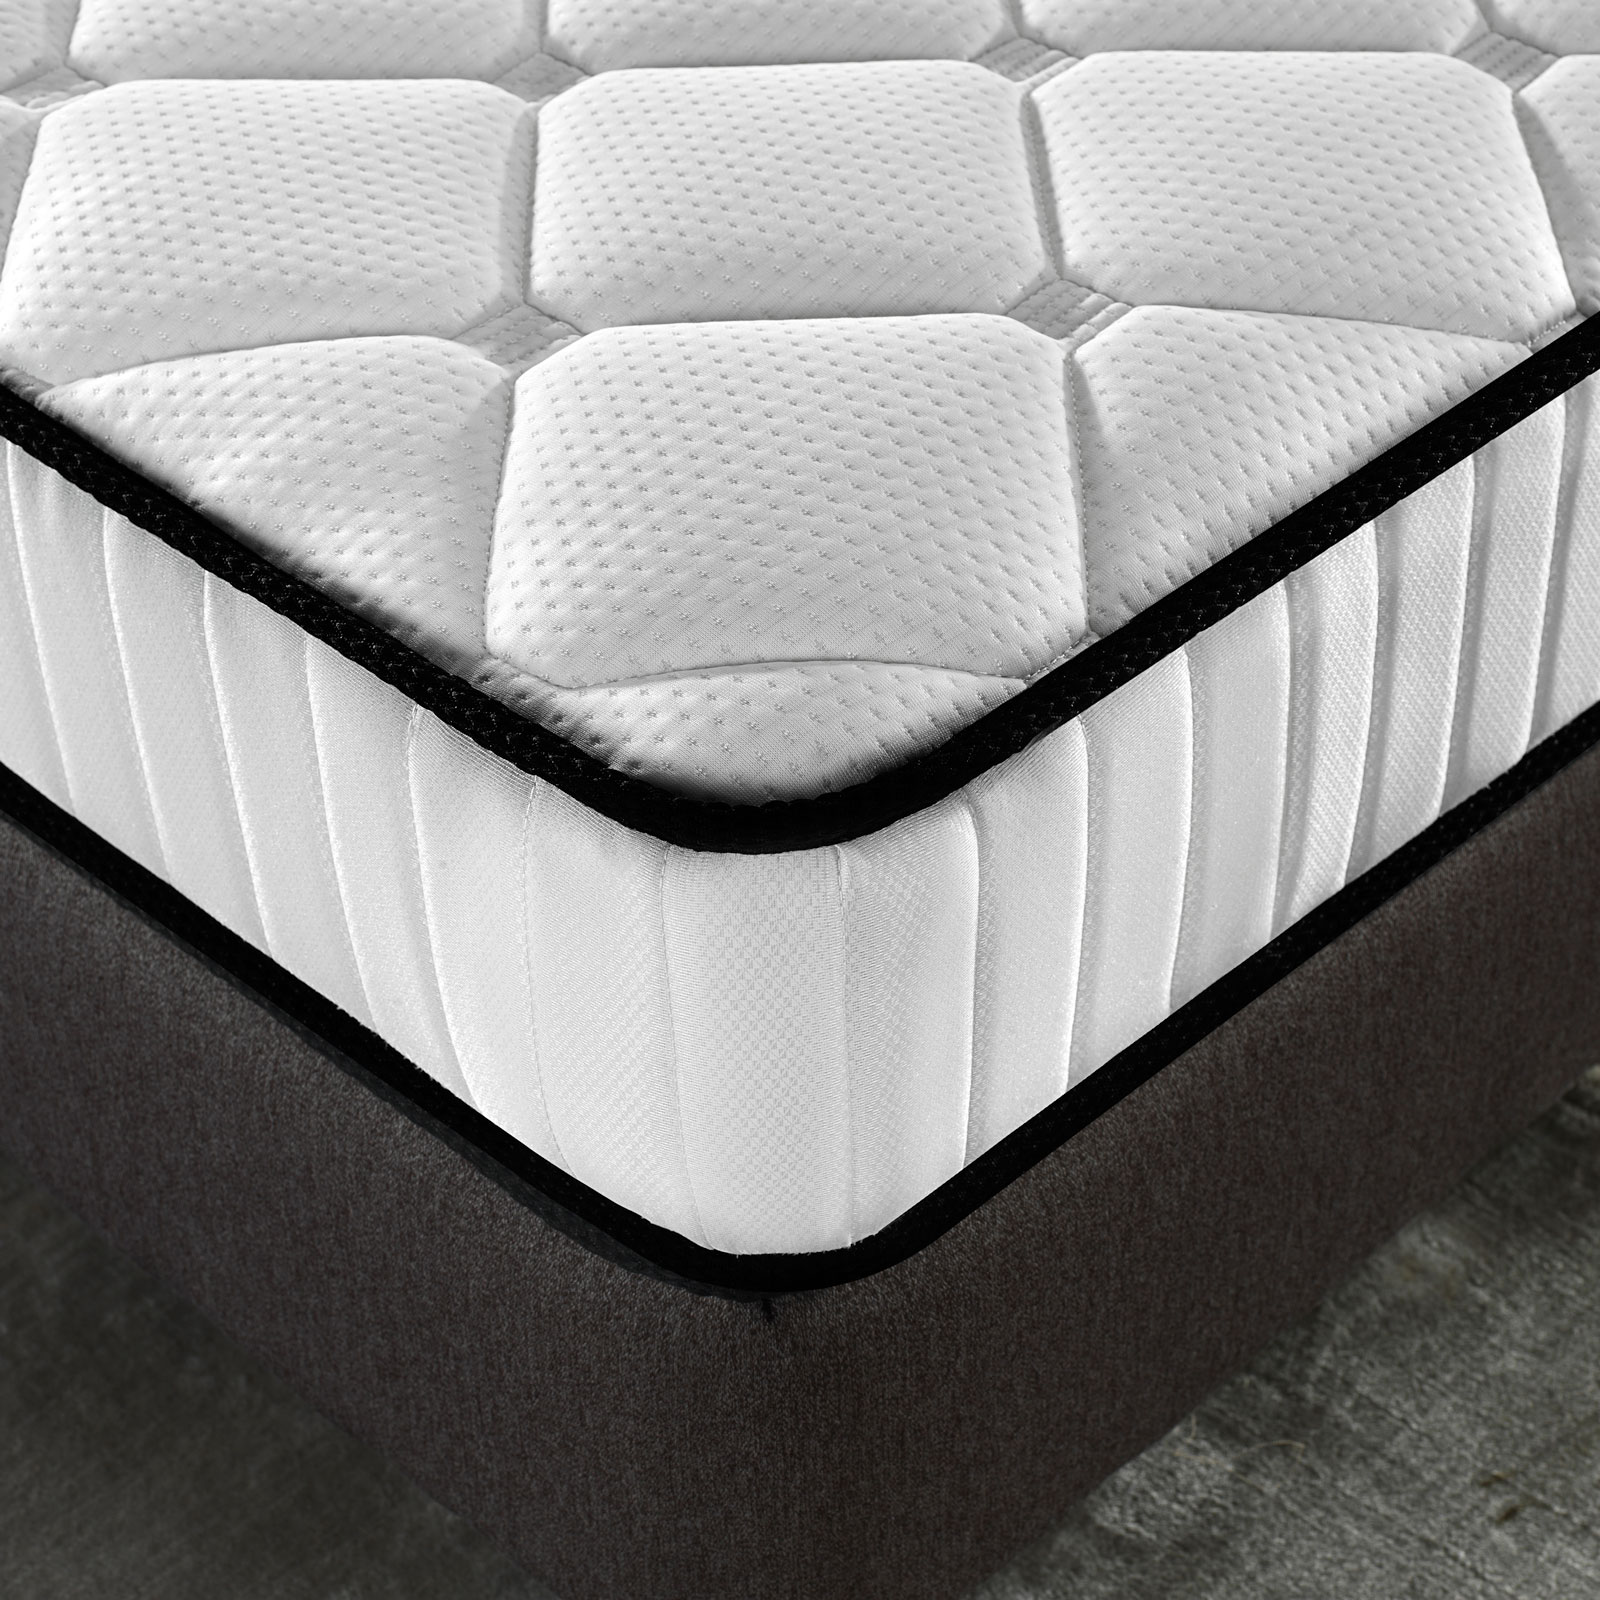 Royal-Comfort-Comforpedic-5-zone-Bed-Mattress-in-a-Box-Single-Double-Queen-King